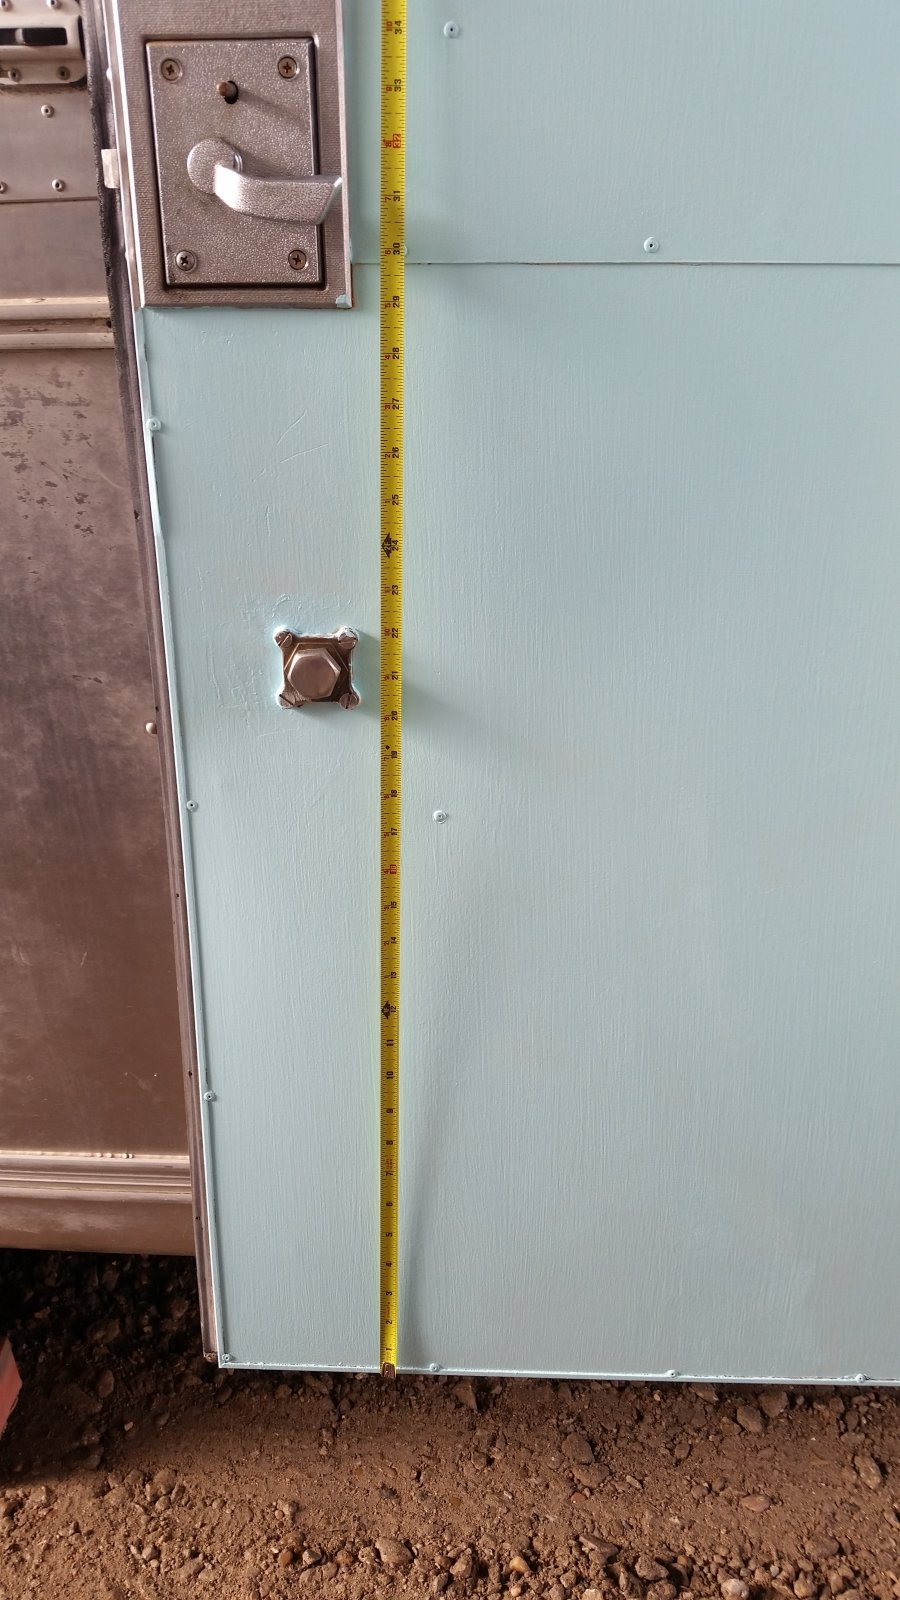 Click image for larger version  Name:Back of Door With Tape.jpg Views:70 Size:237.9 KB ID:241714